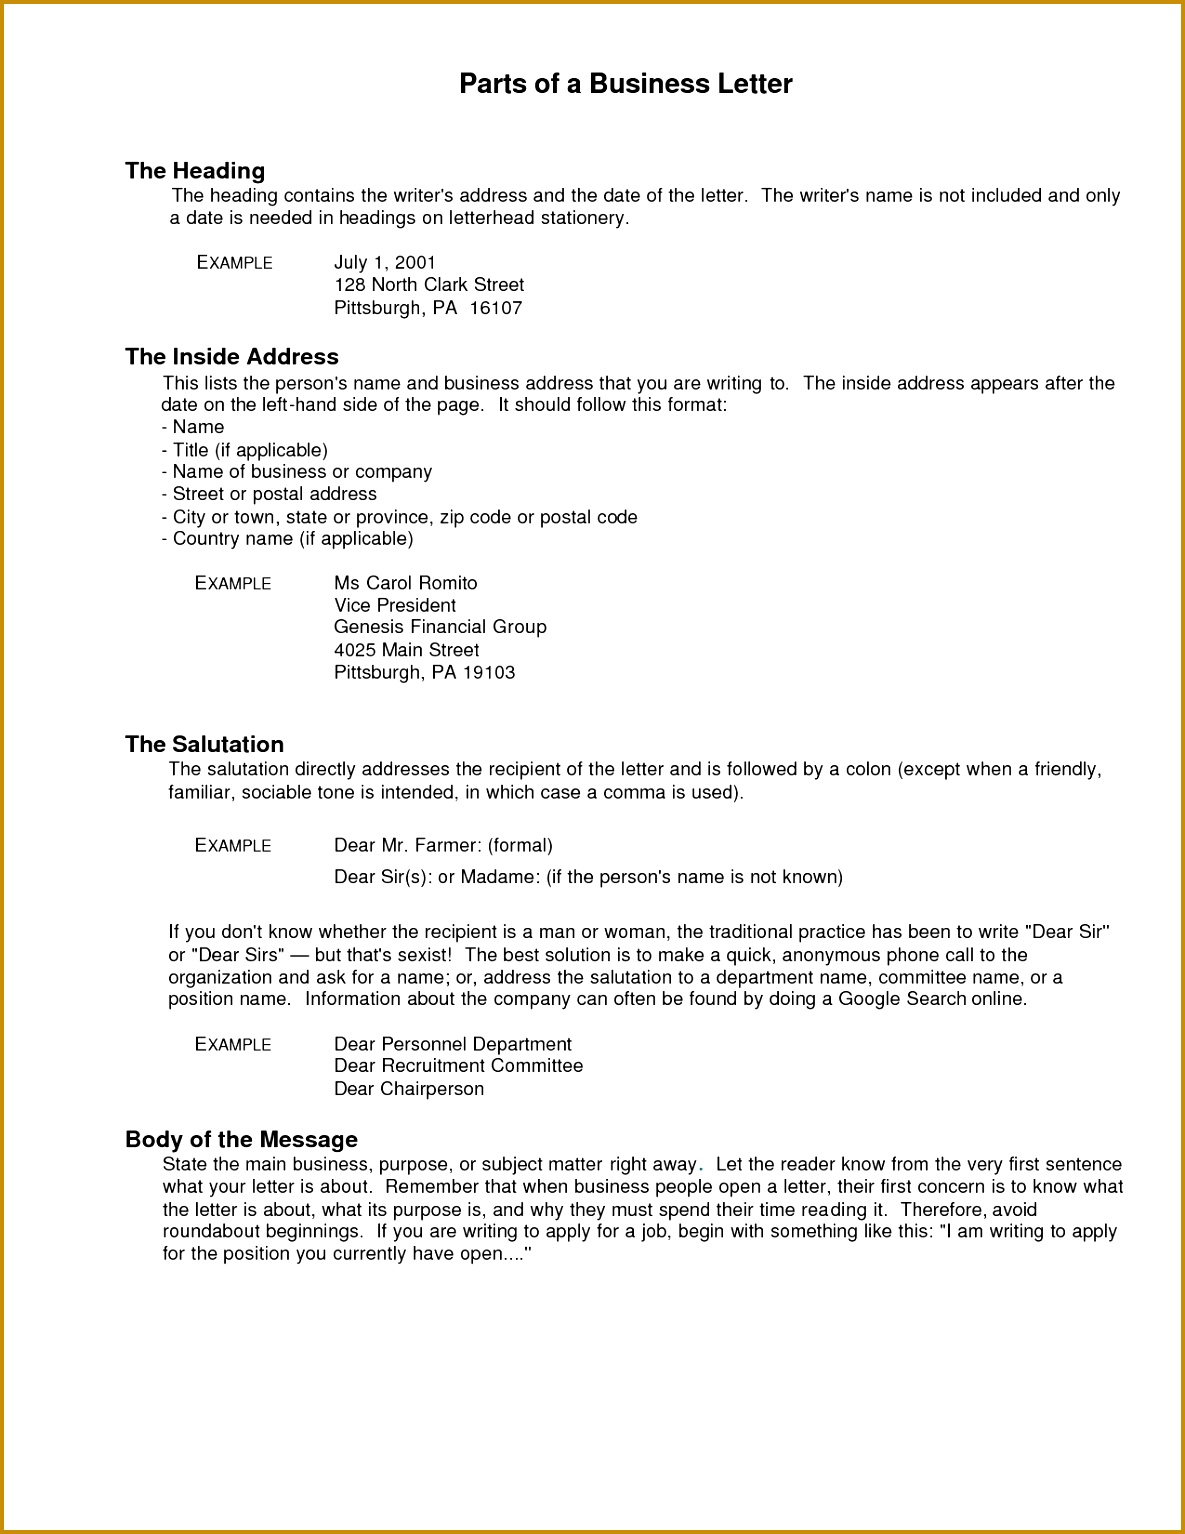 Date Extension Letter Format New Letter Format Extension Time Best 15341185